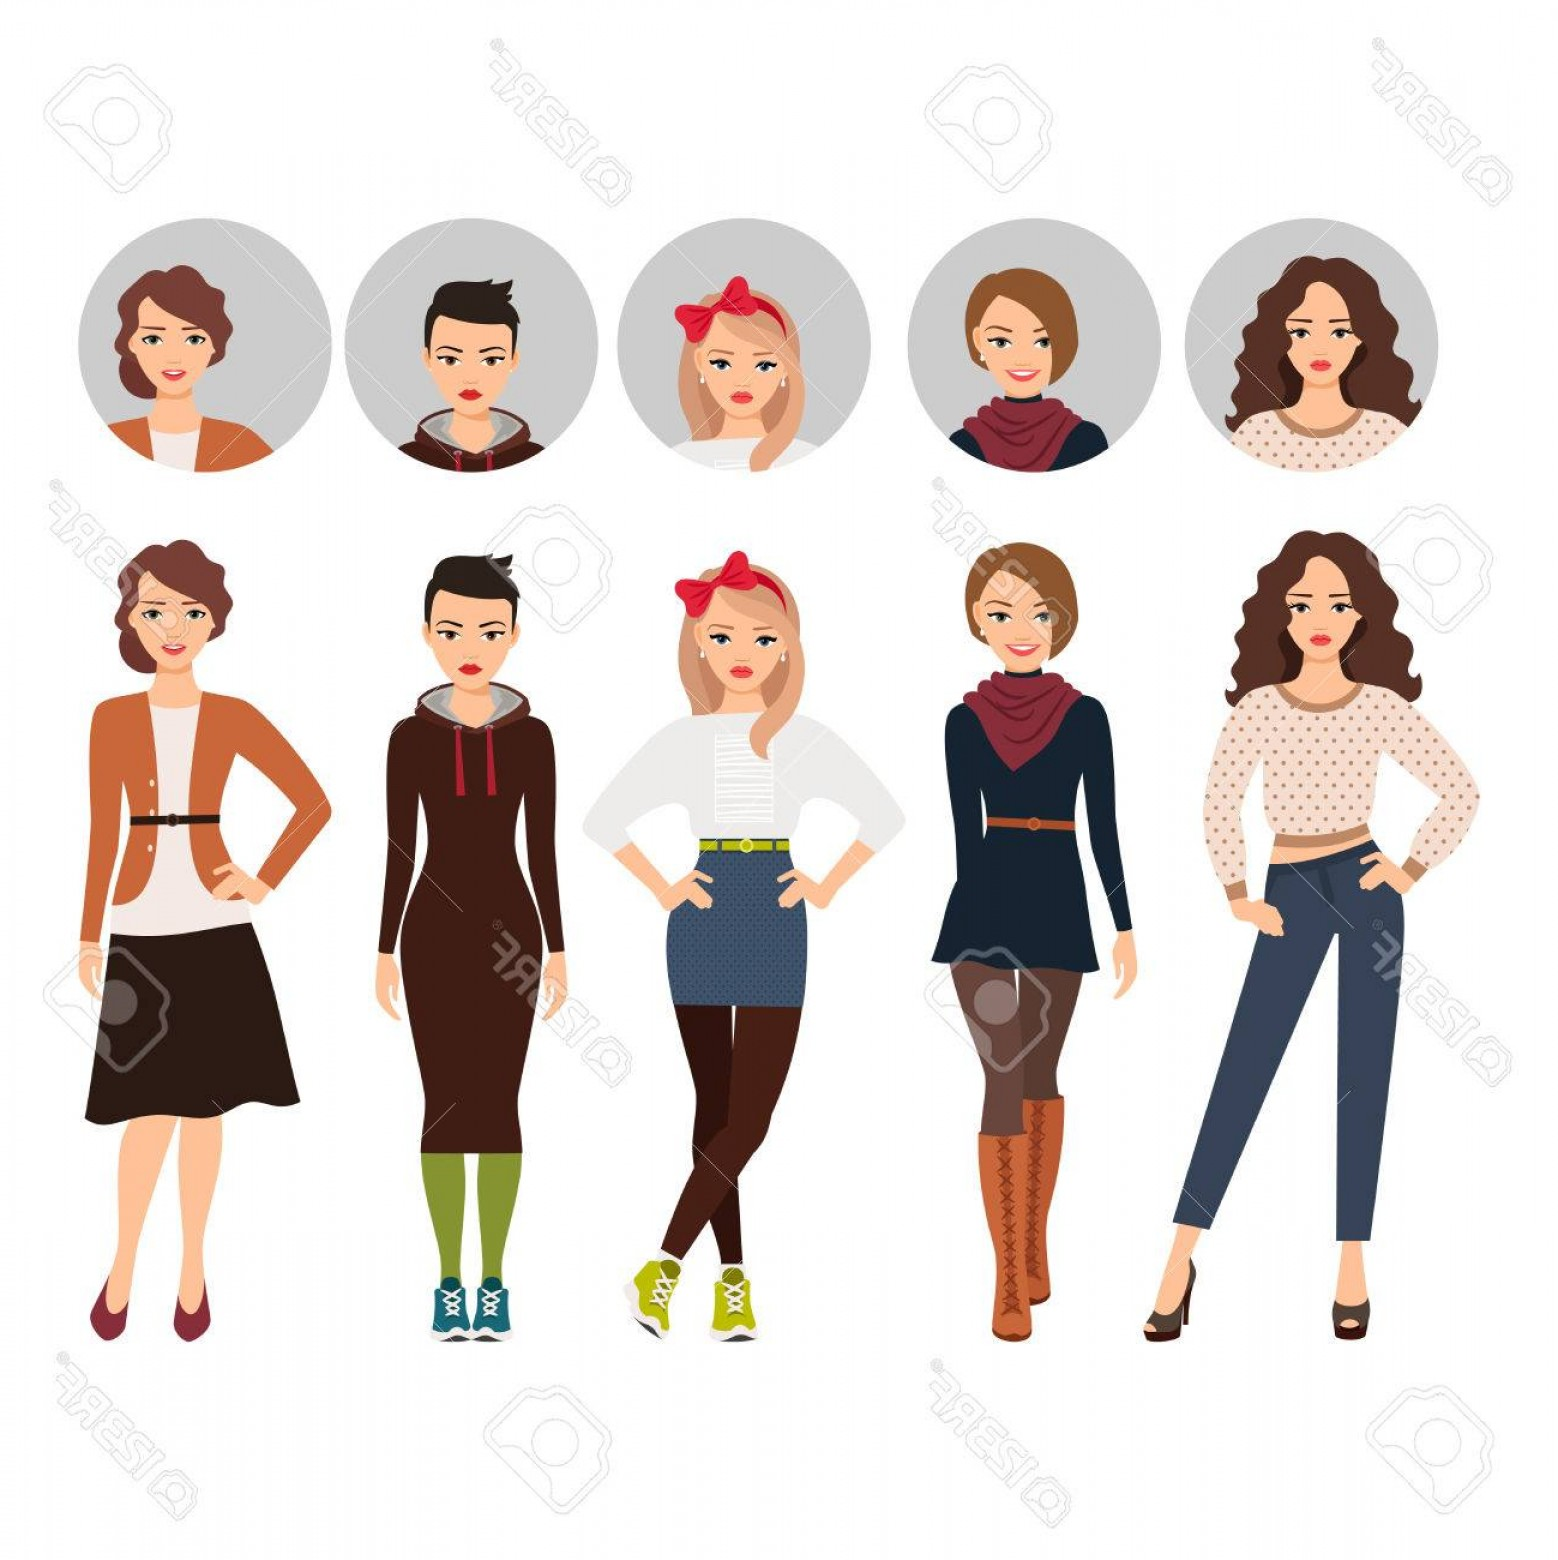 Teenage Icons Vector: Photostock Vector Cartoon Teenage Girl In Everyday Dress Vector Illustration With Face Evetar Icons Vector Set